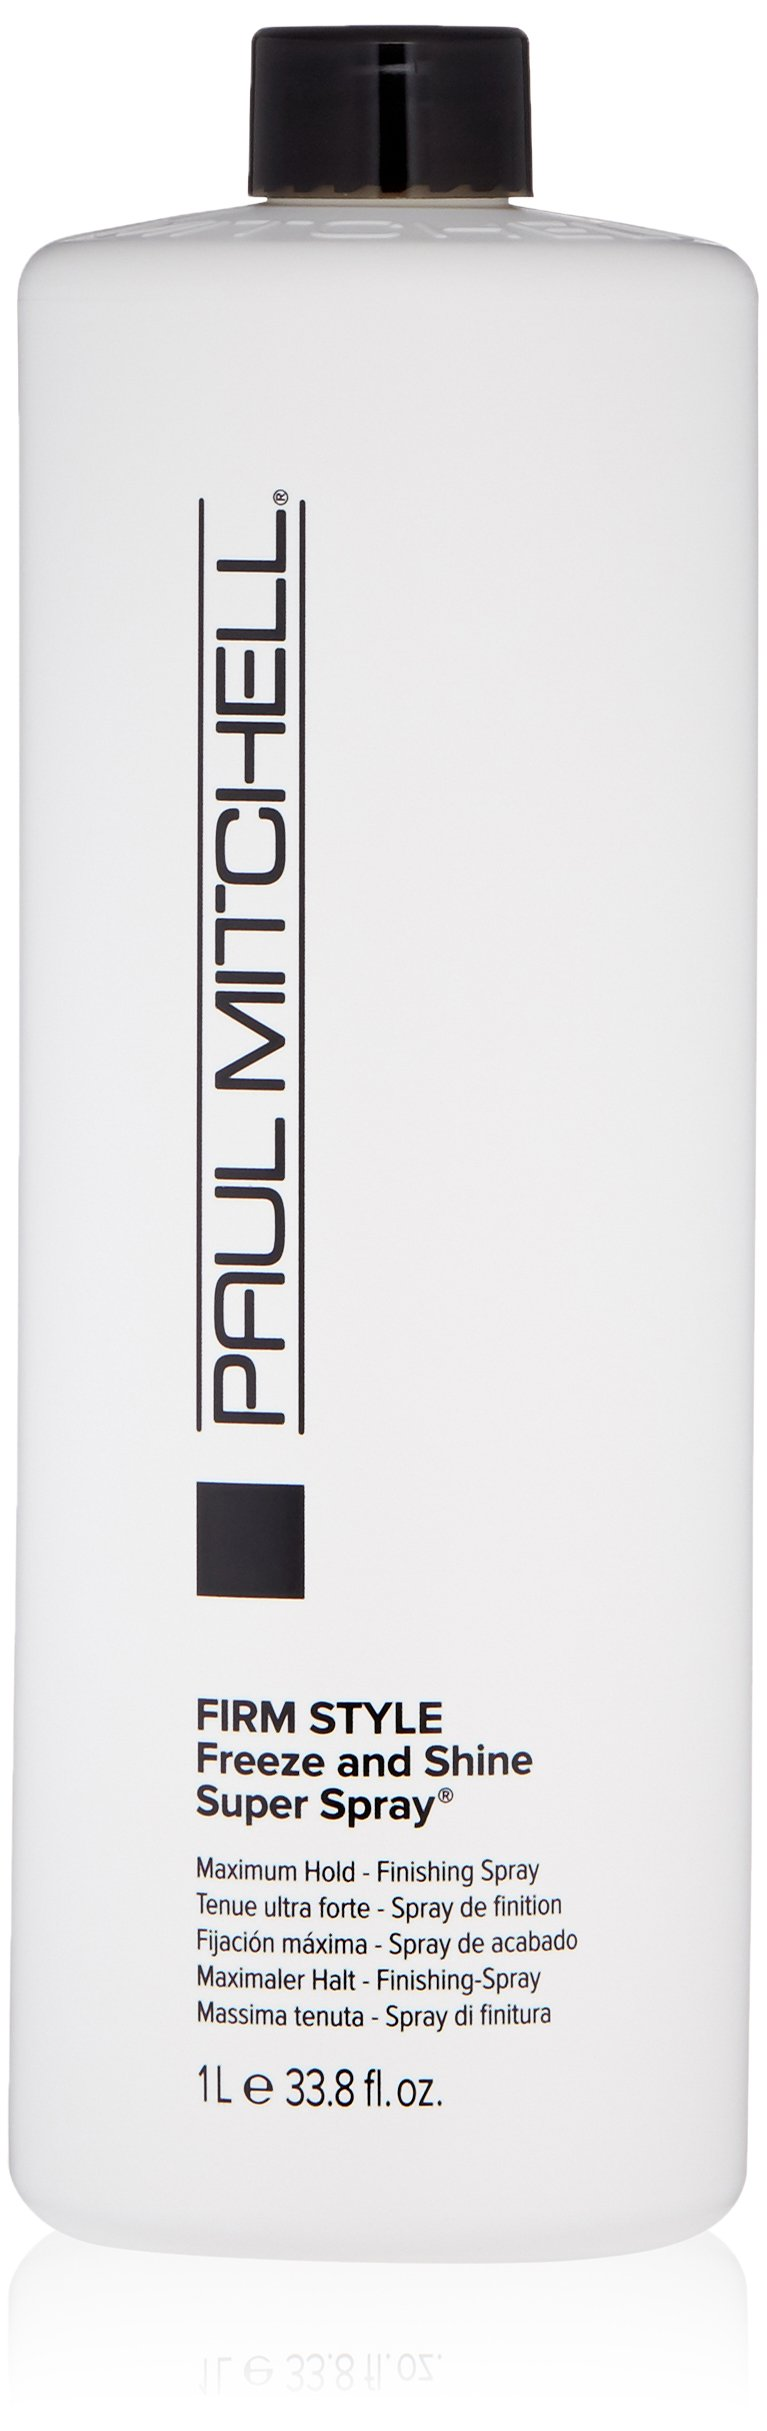 Paul Mitchell Freeze and Shine Super Spray,33.8 Fl Oz by Paul Mitchell